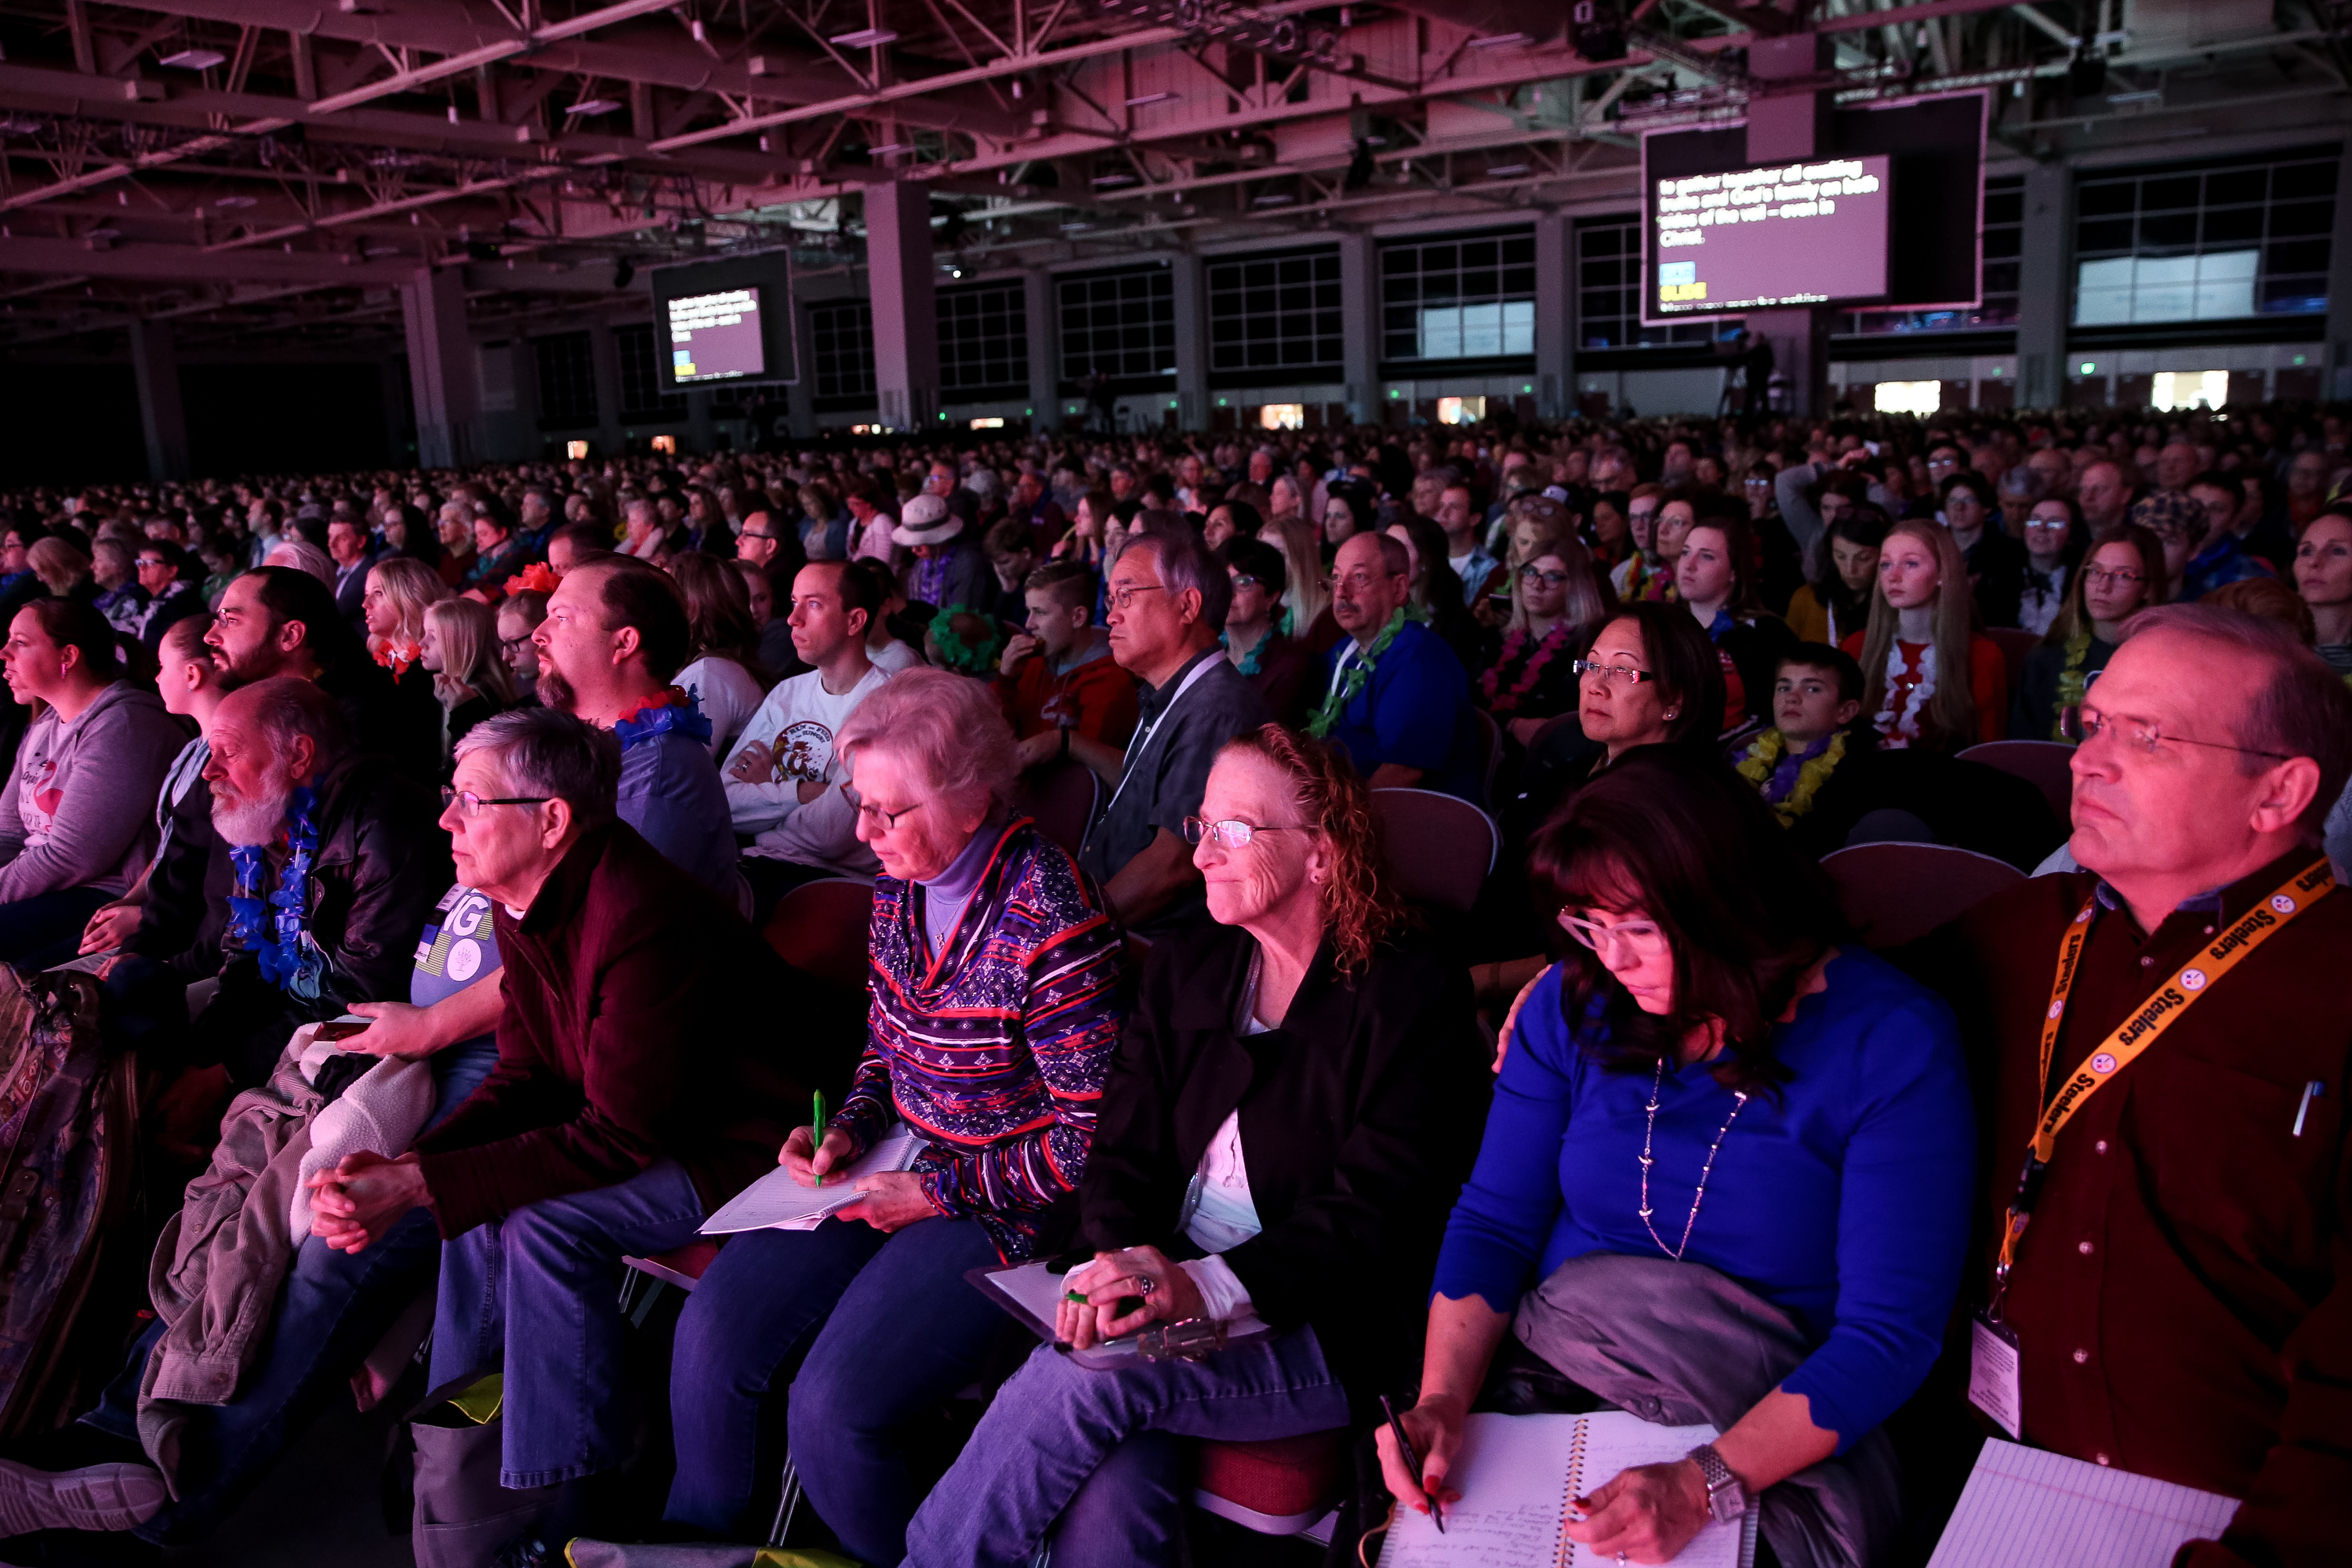 People listen as Elder David A. Bednar of the Quorum of The Twelve Apostles and his wife, Sister Susan Bednar, speak during the RootsTech conference at the Salt Palace in Salt Lake City on Saturday, March 2, 2019.